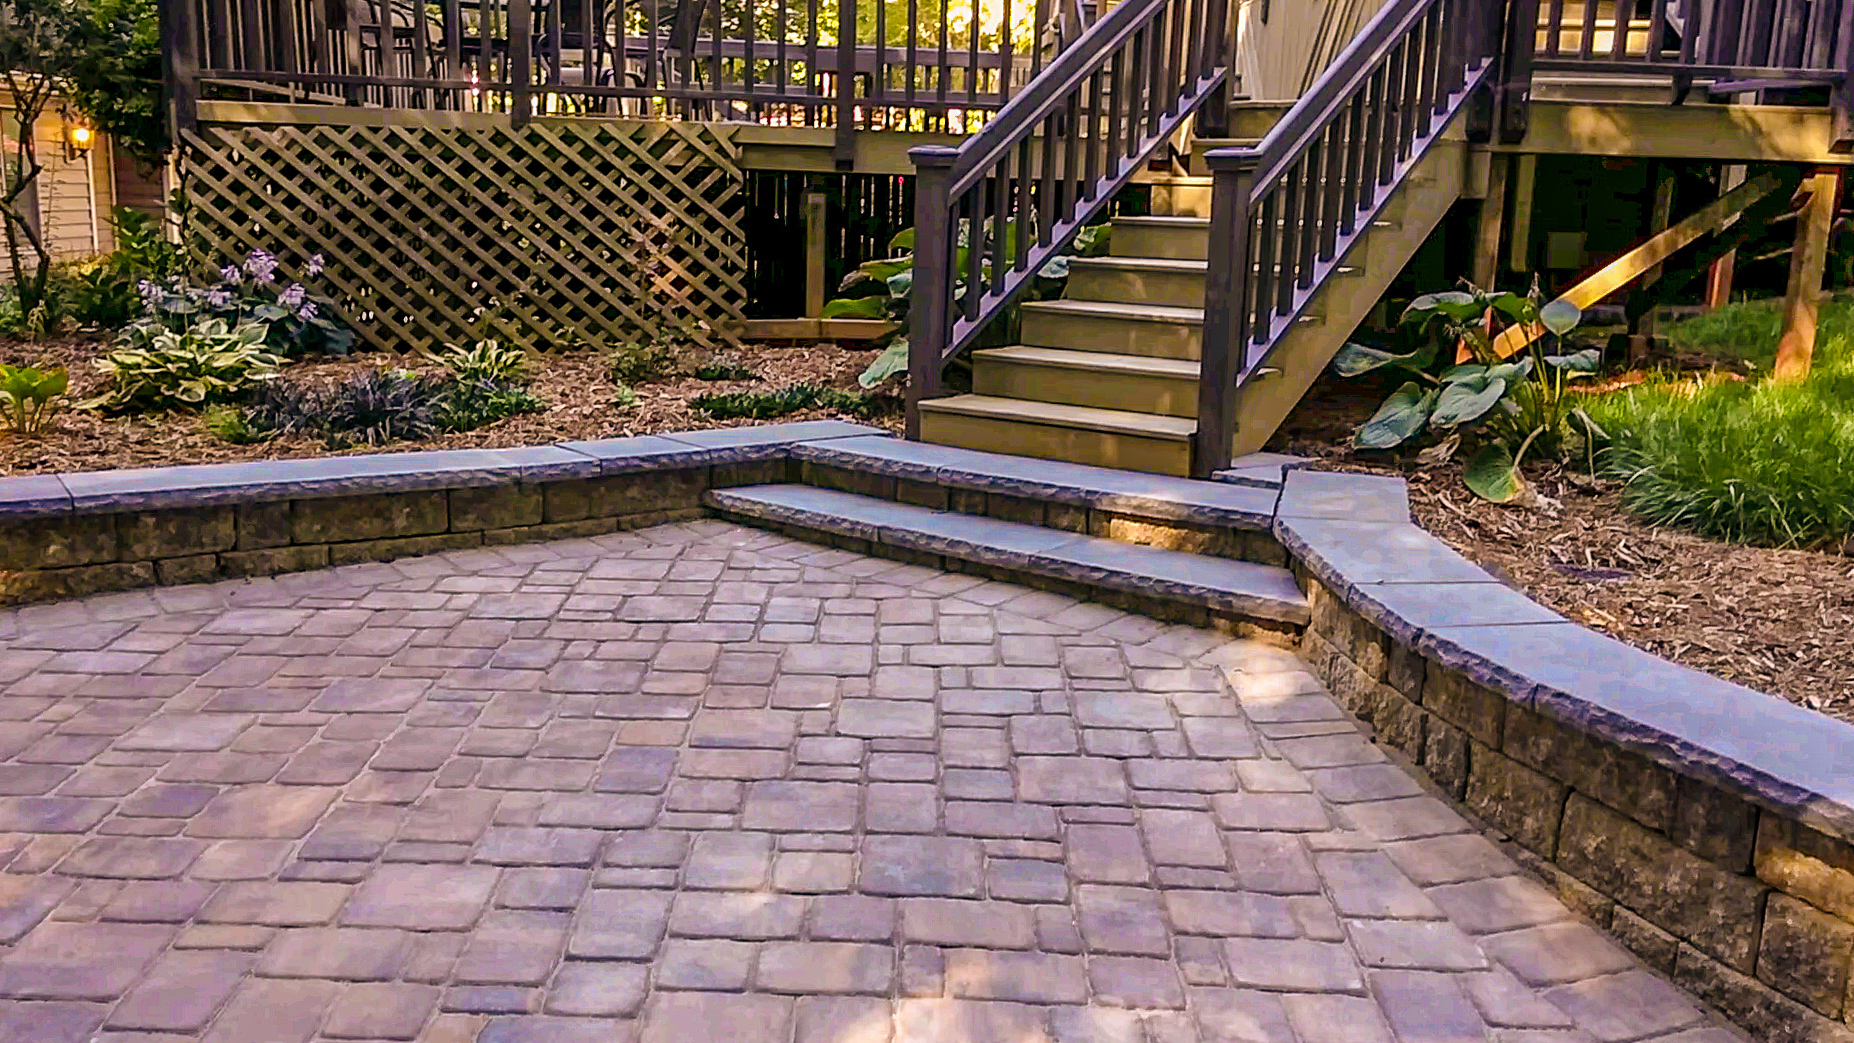 Belgard 3 Piece Pavers w/Wall